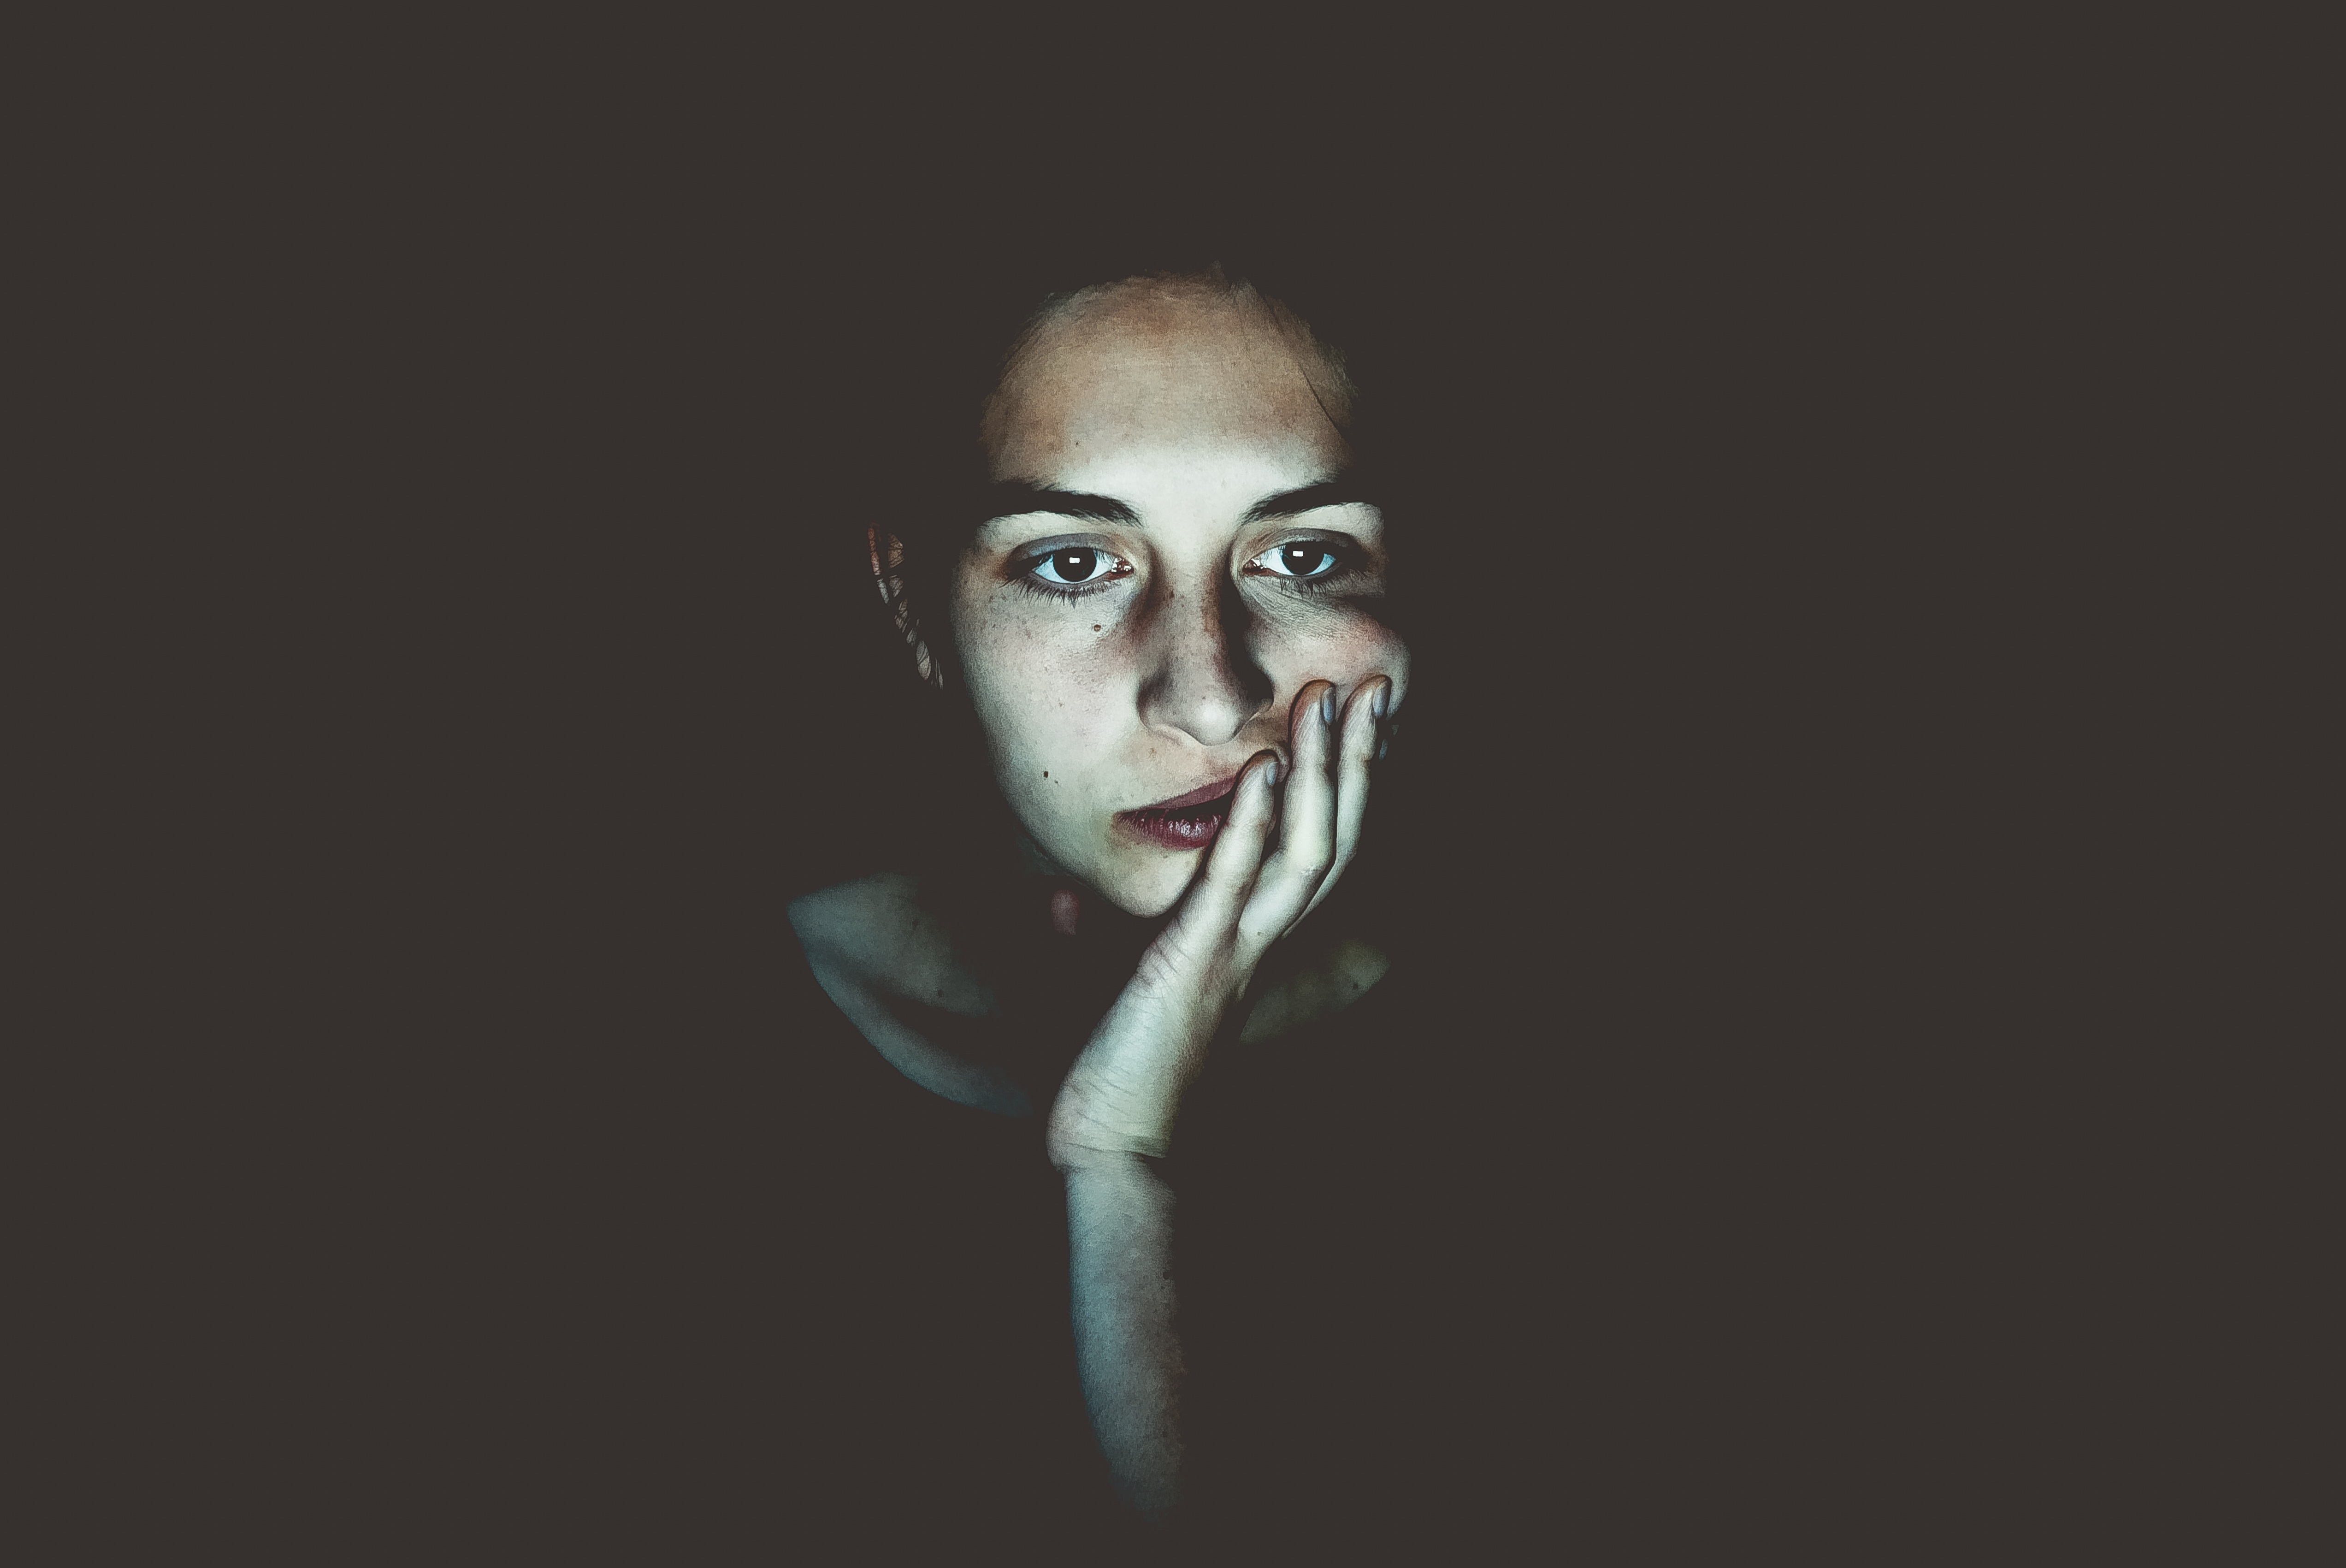 Insomnia, Symptoms, Types, Causes and Risks